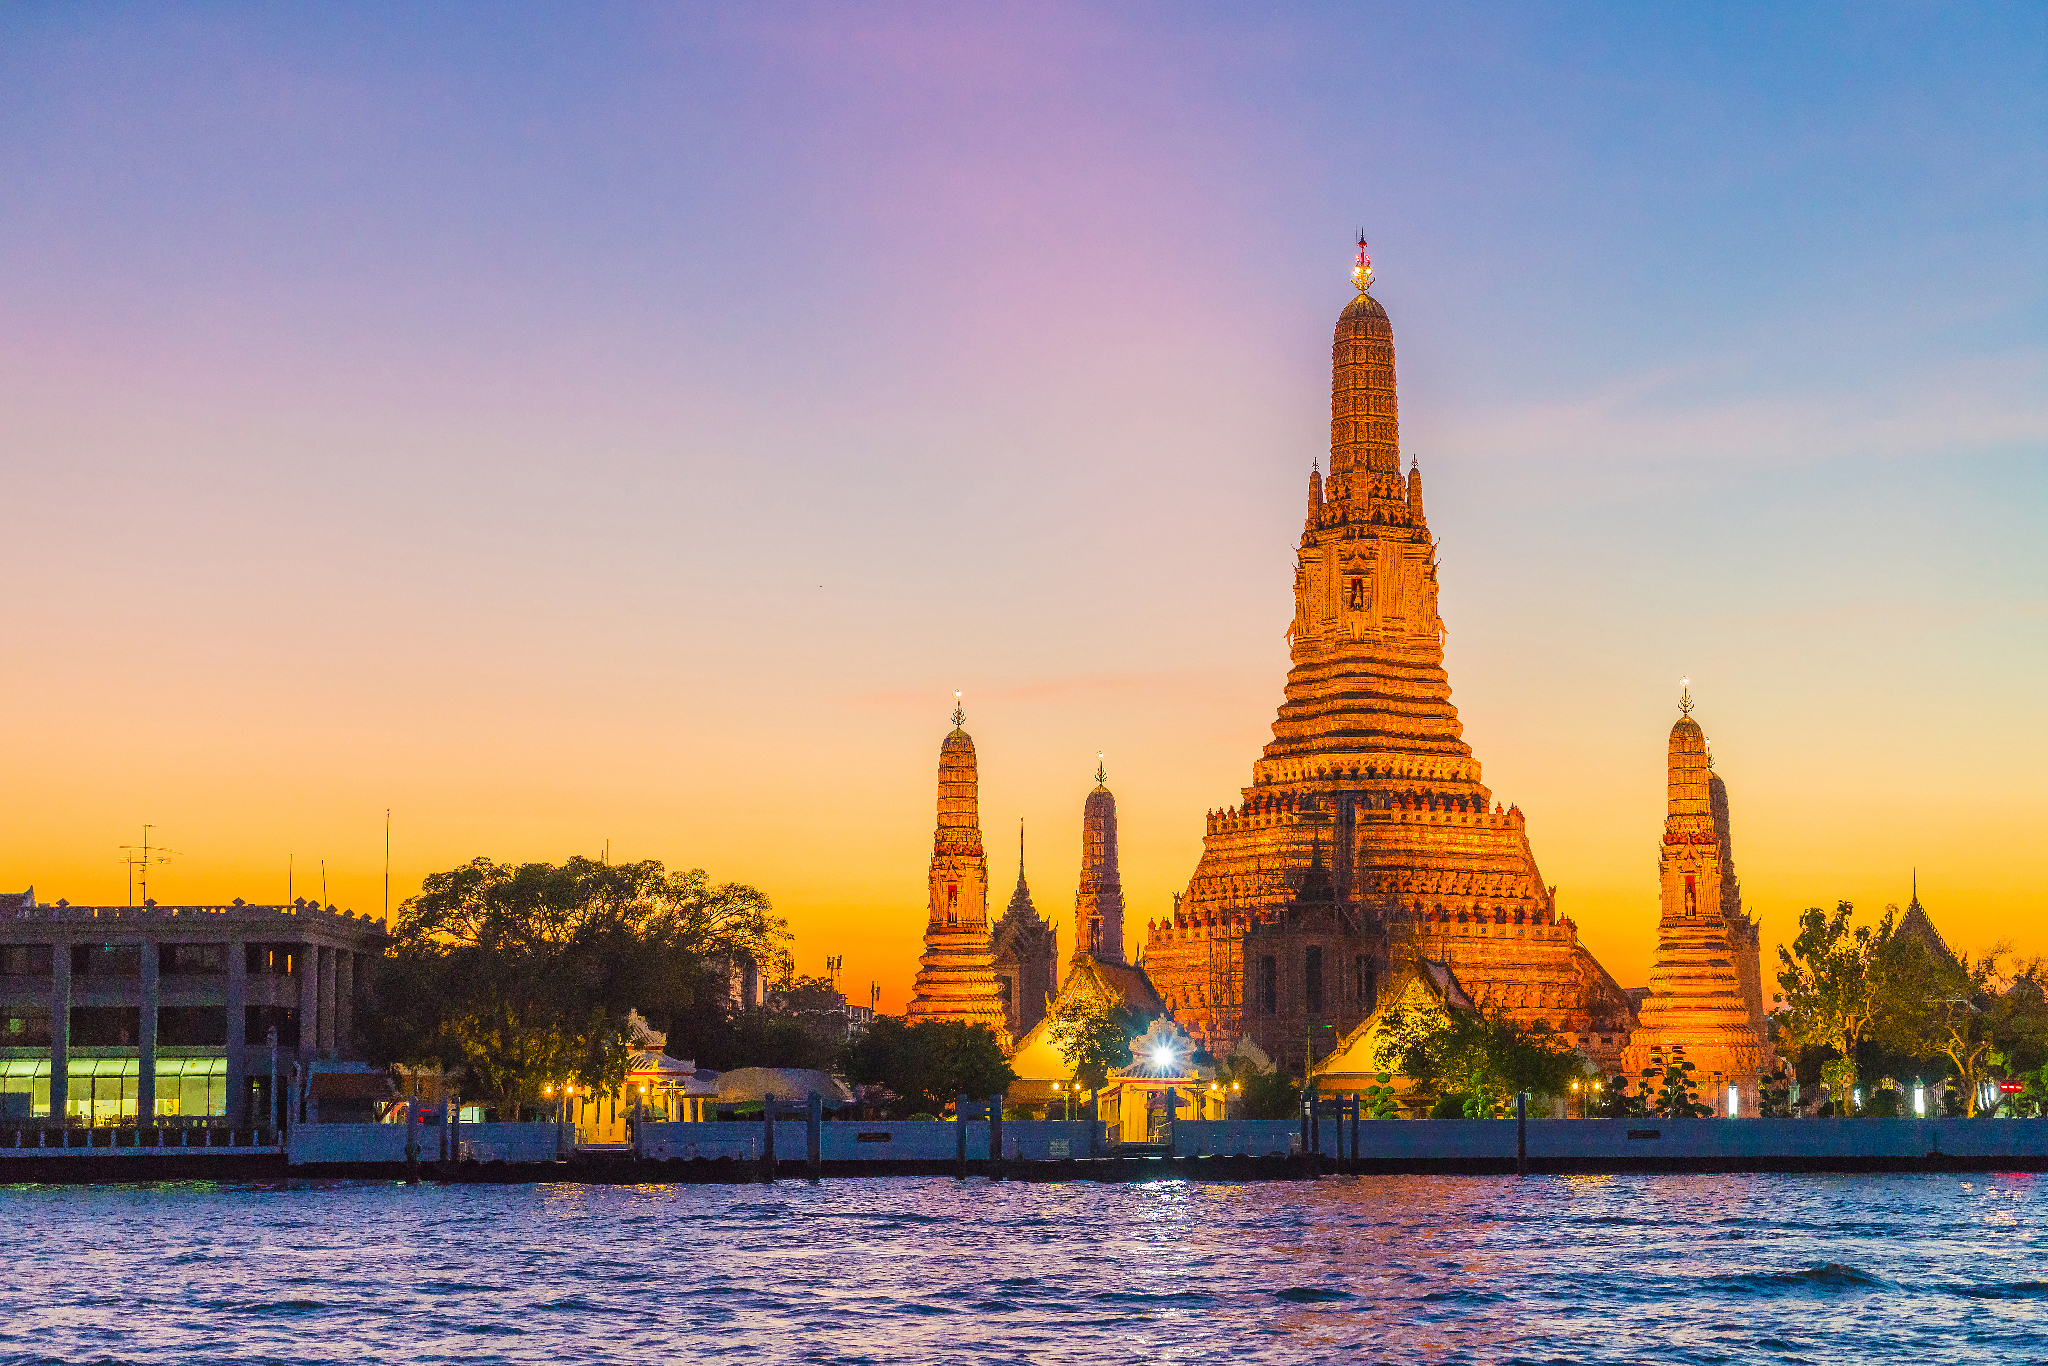 Some of the best places to watch sunset in Bangkok